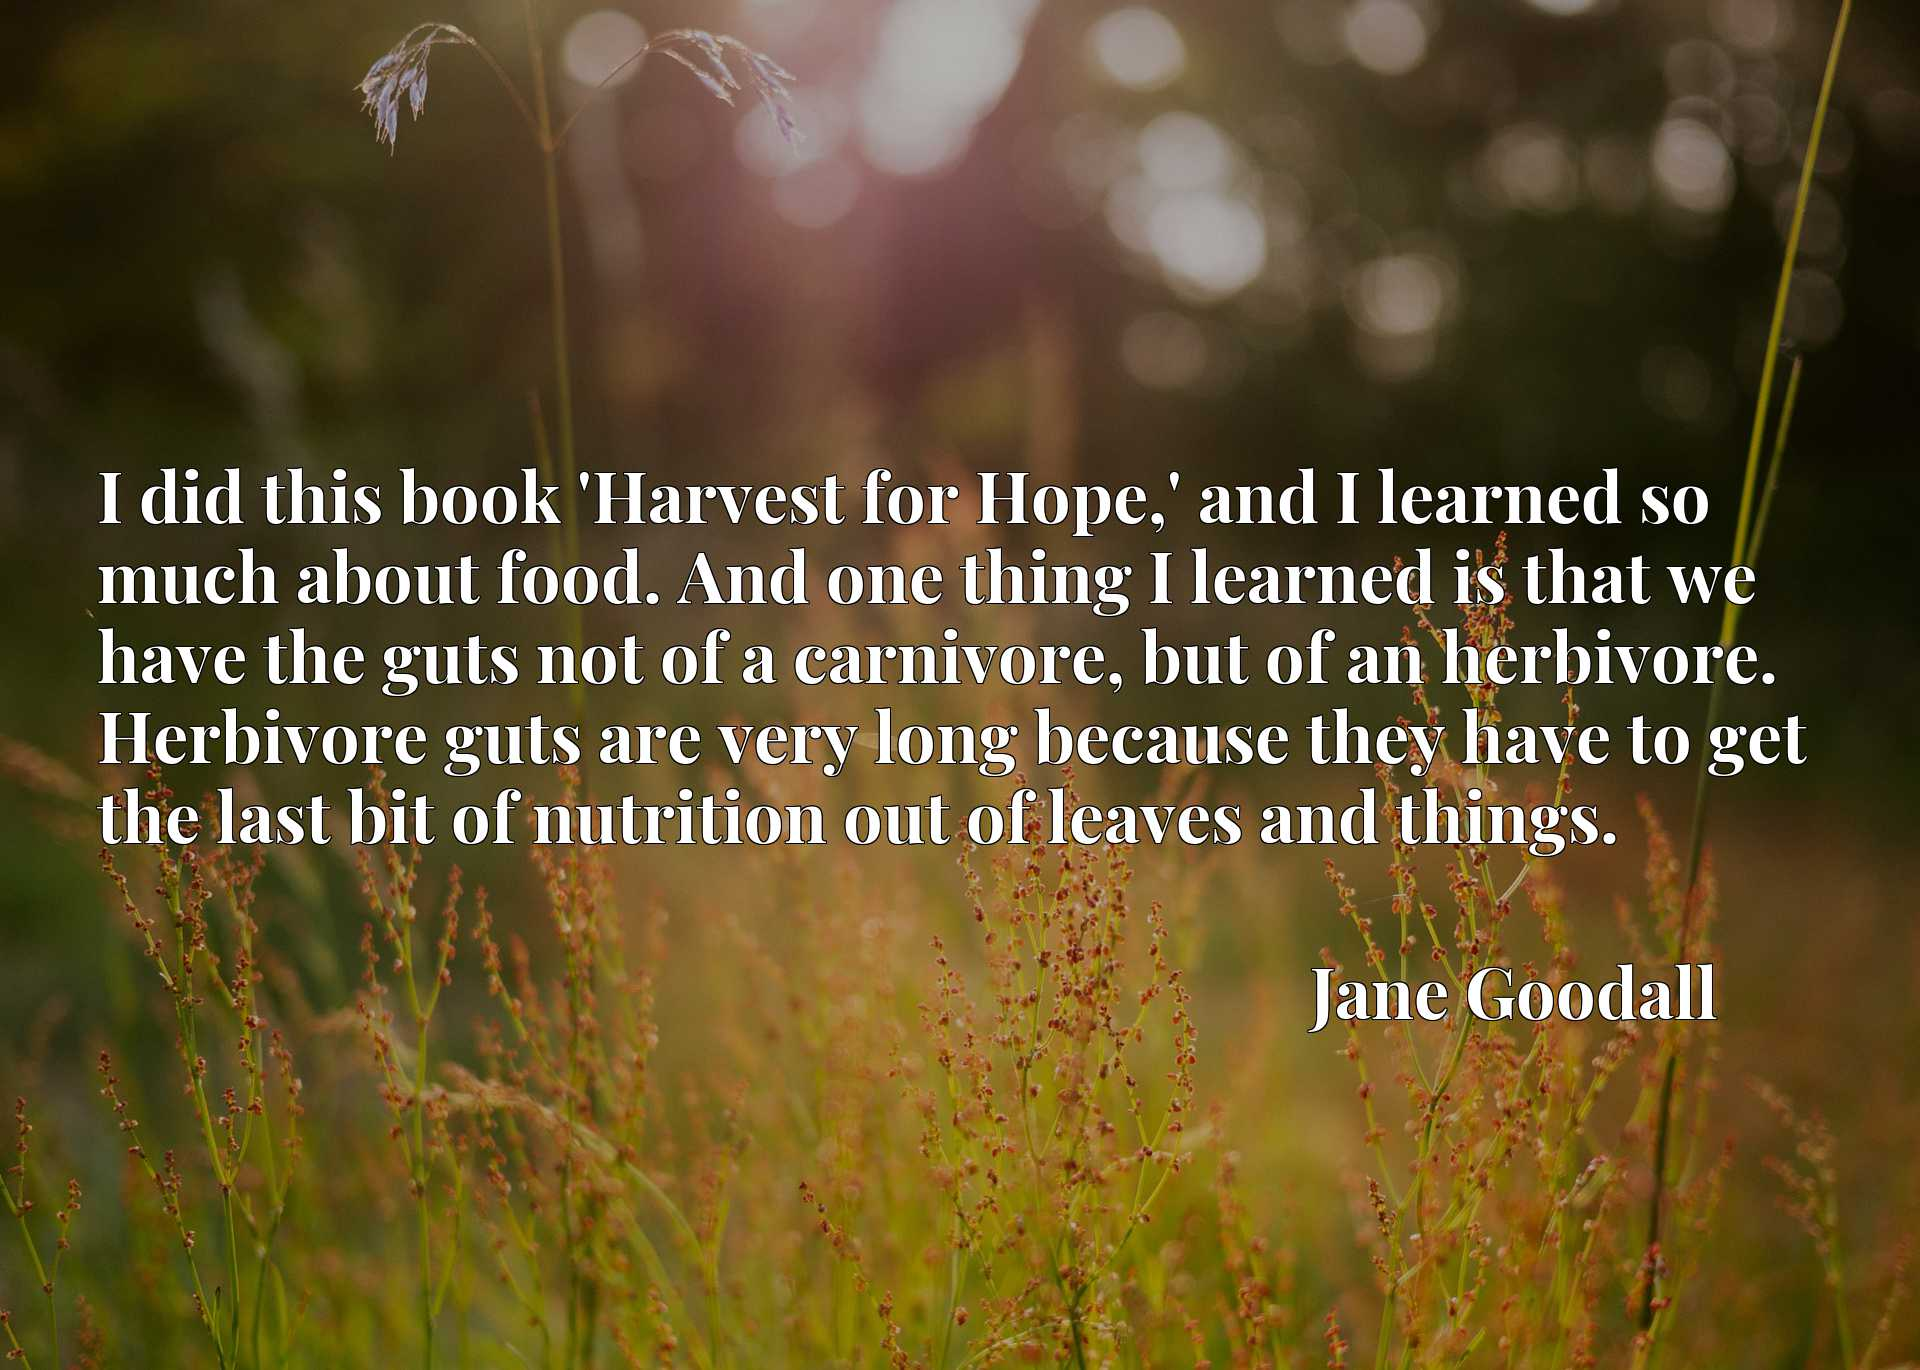 I did this book 'Harvest for Hope,' and I learned so much about food. And one thing I learned is that we have the guts not of a carnivore, but of an herbivore. Herbivore guts are very long because they have to get the last bit of nutrition out of leaves and things.